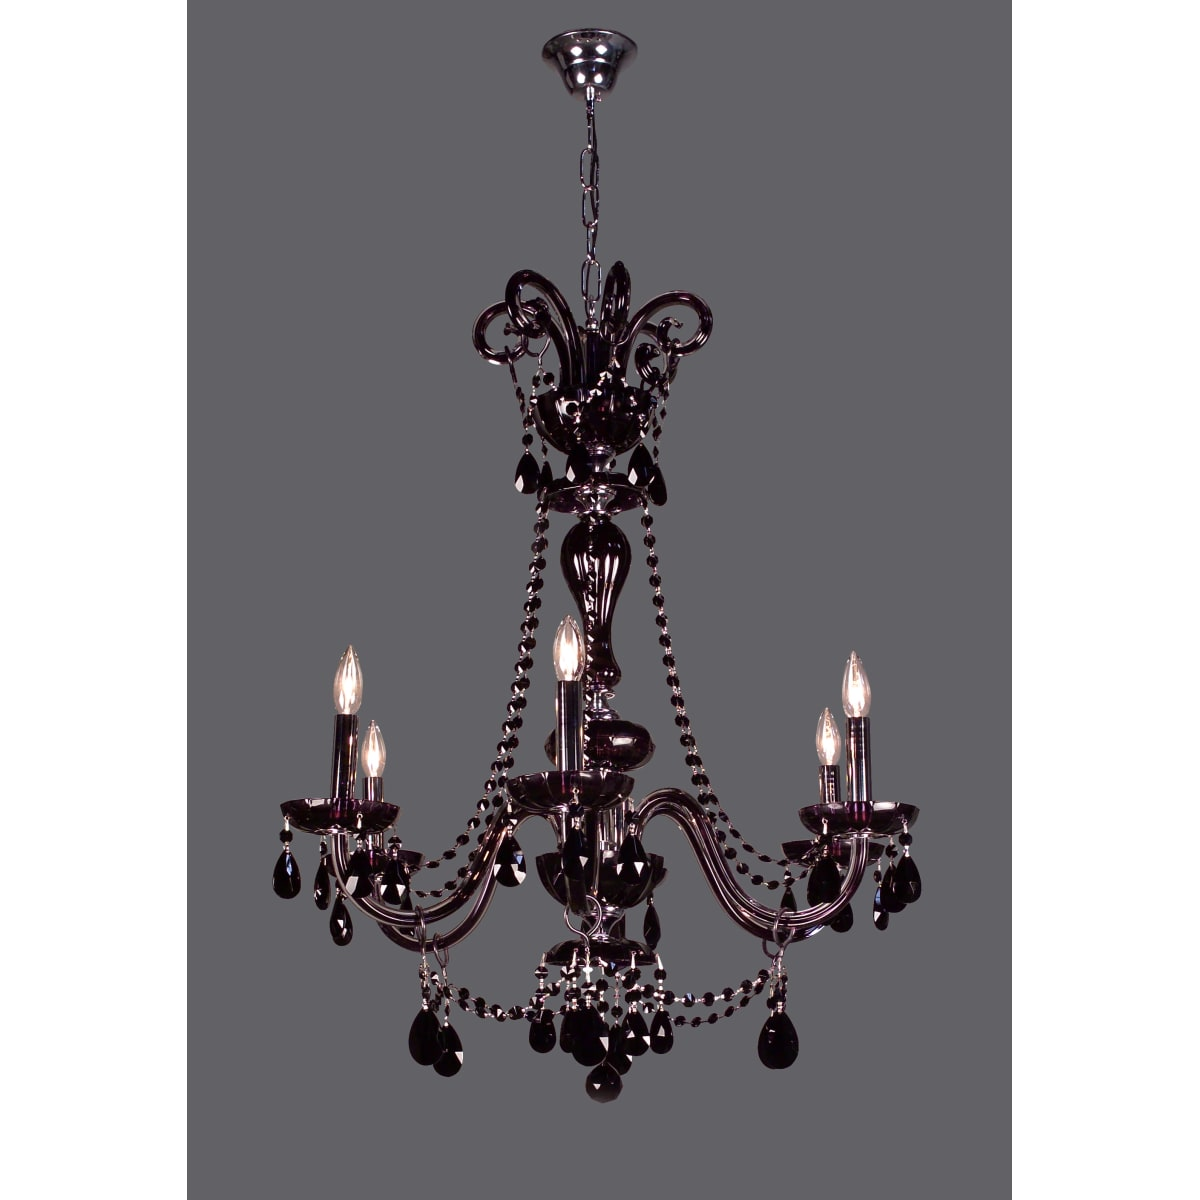 Classic Lighting 82016 Cbk Crystalique Black 35 Crystal Chandelier From The Monte Carlo Elite Collection Lightingdirect Com